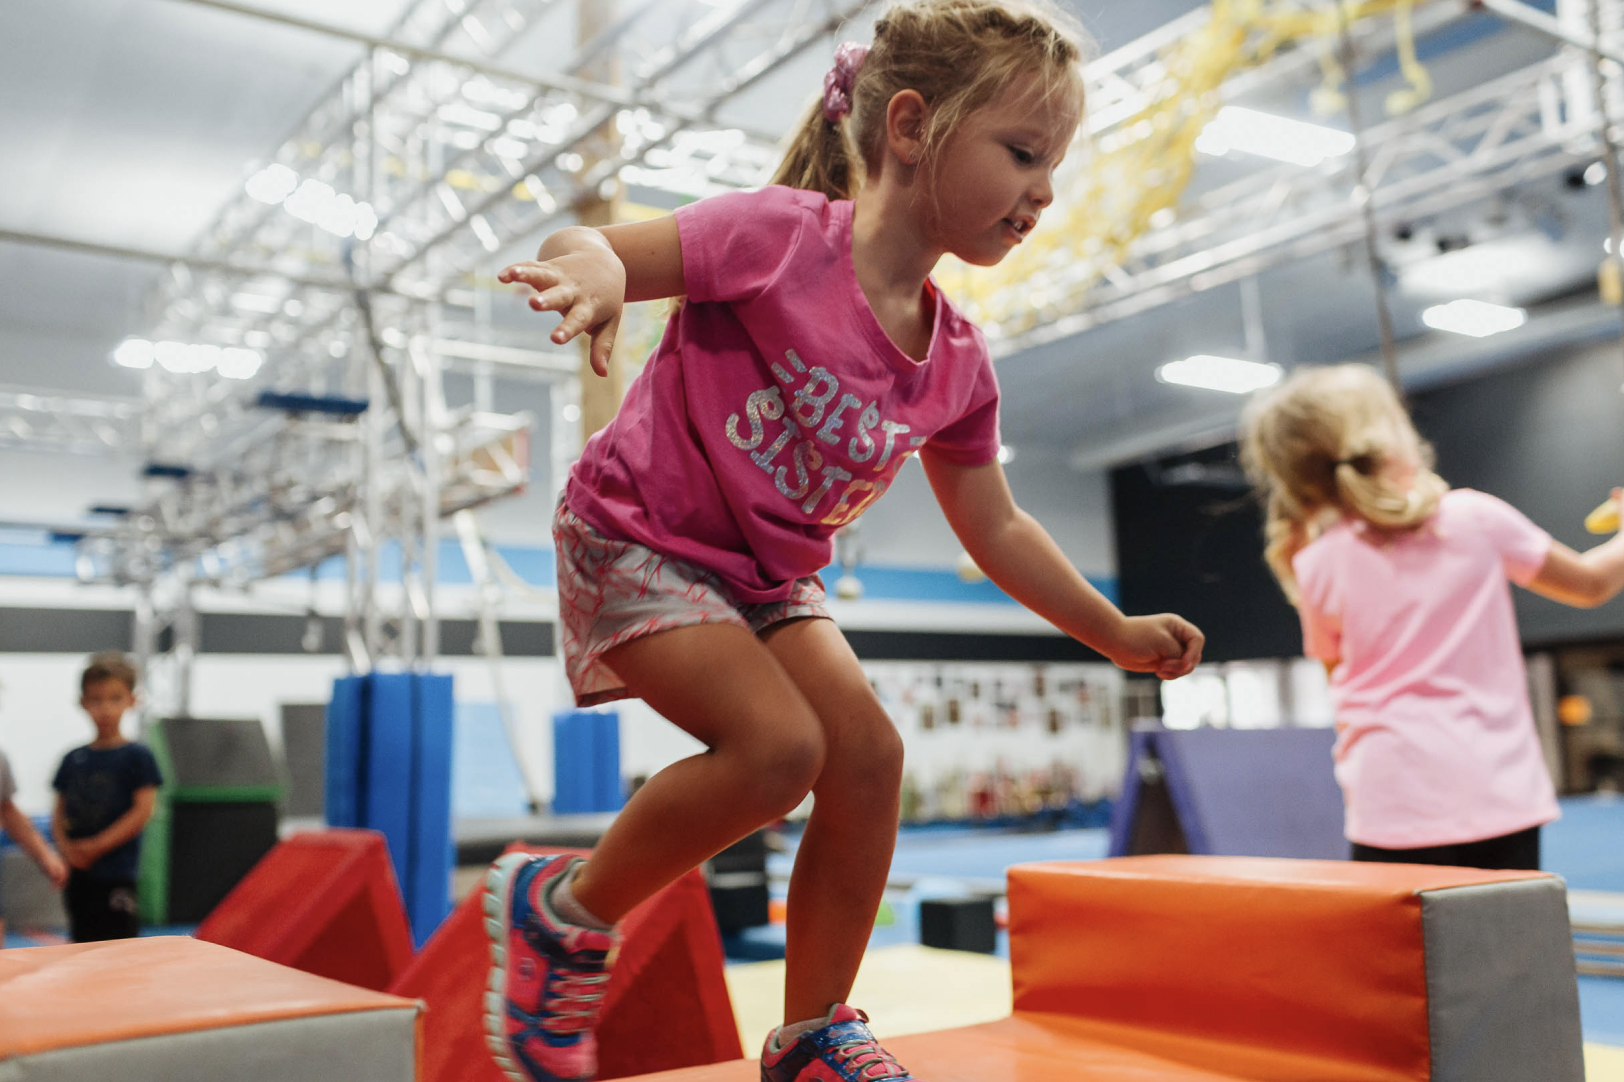 kids using an obstacle course